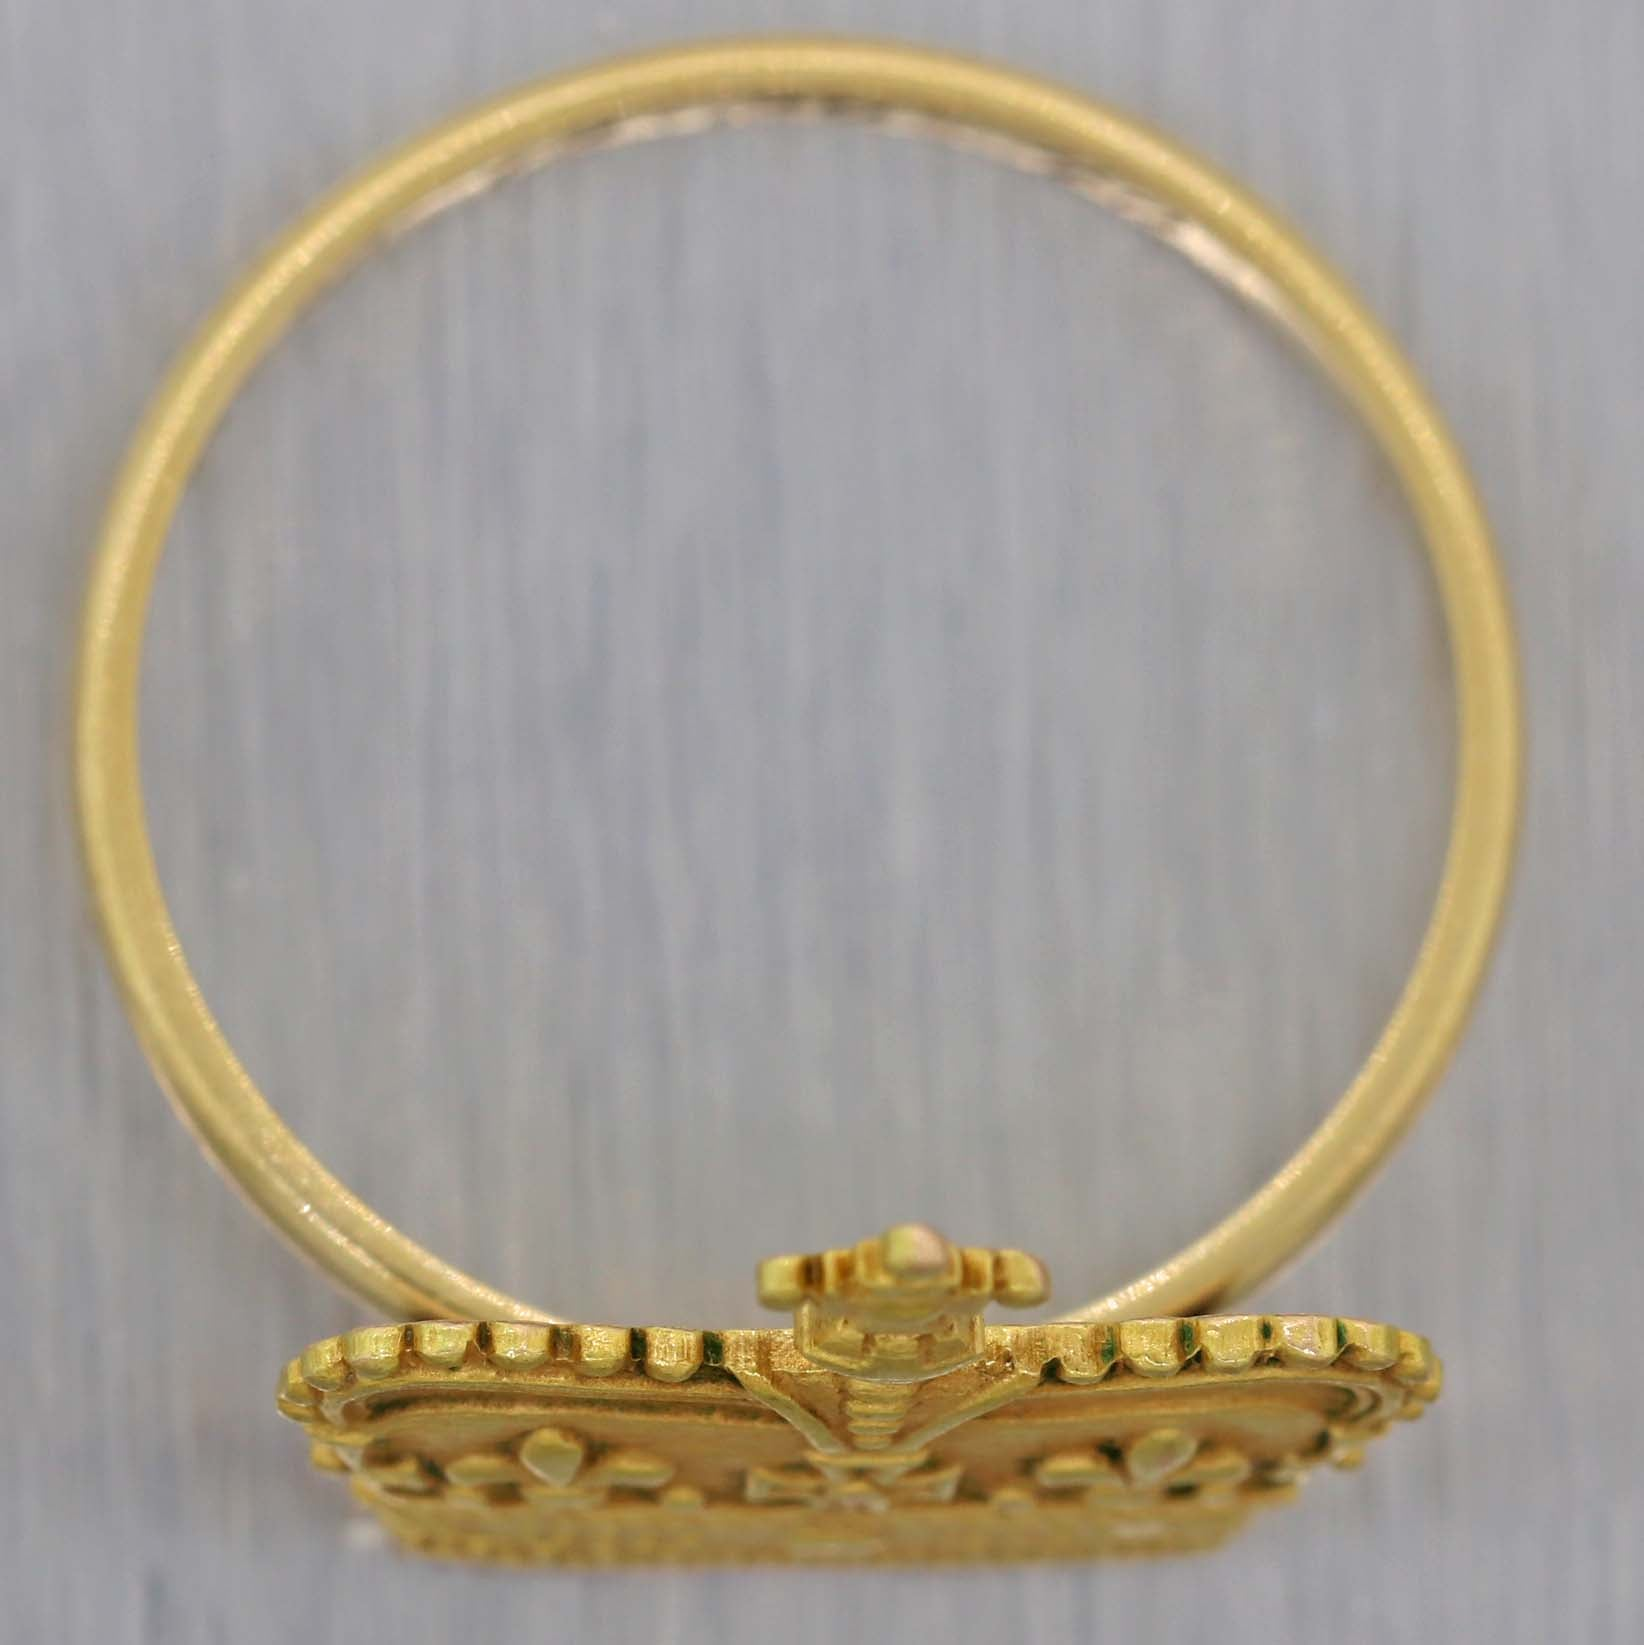 1890s Antique Victorian Estate Solid 14k Yellow Gold Crown